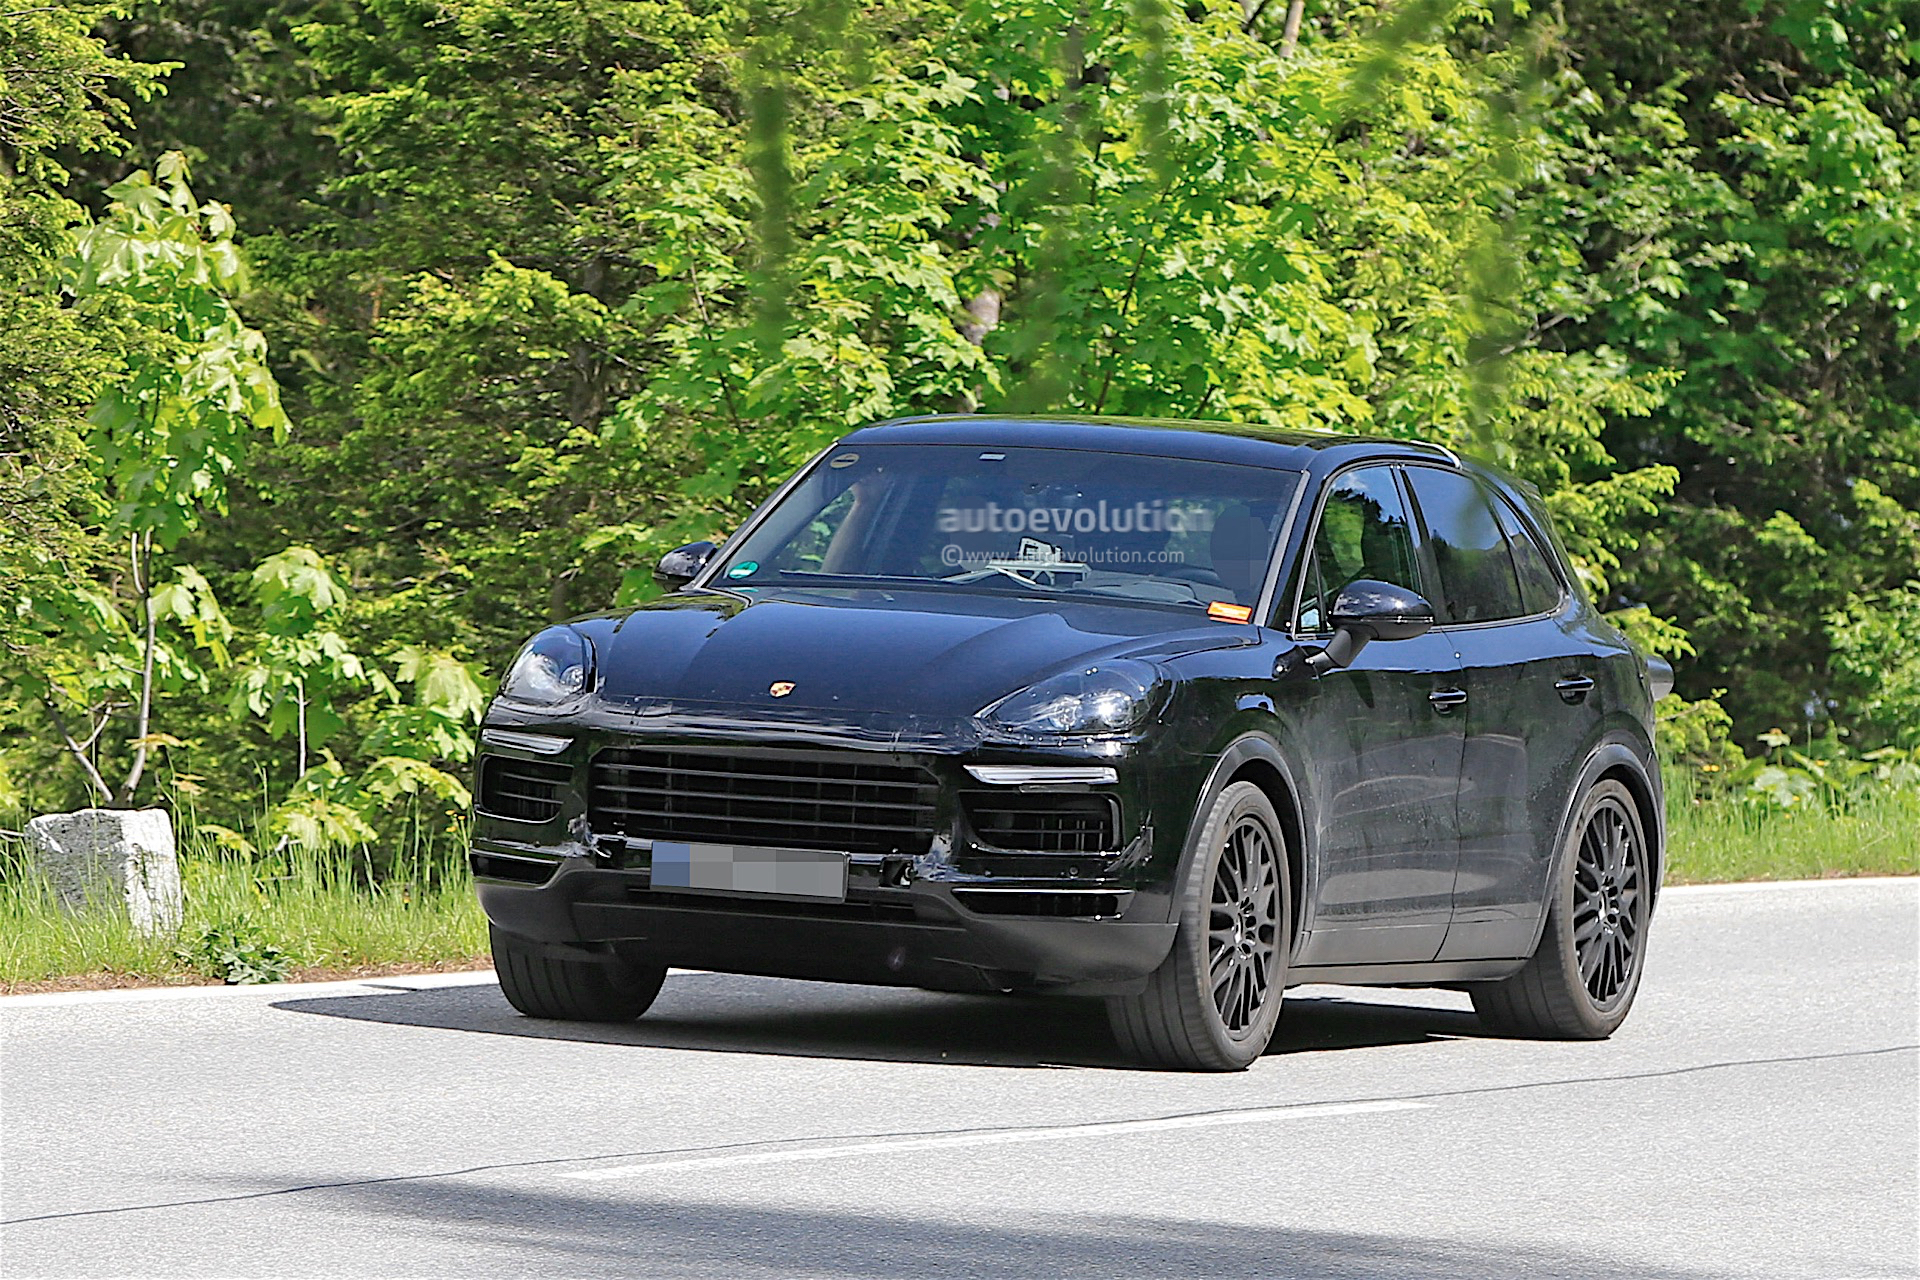 2018 porsche cayenne spied again still a prototype mule. Black Bedroom Furniture Sets. Home Design Ideas